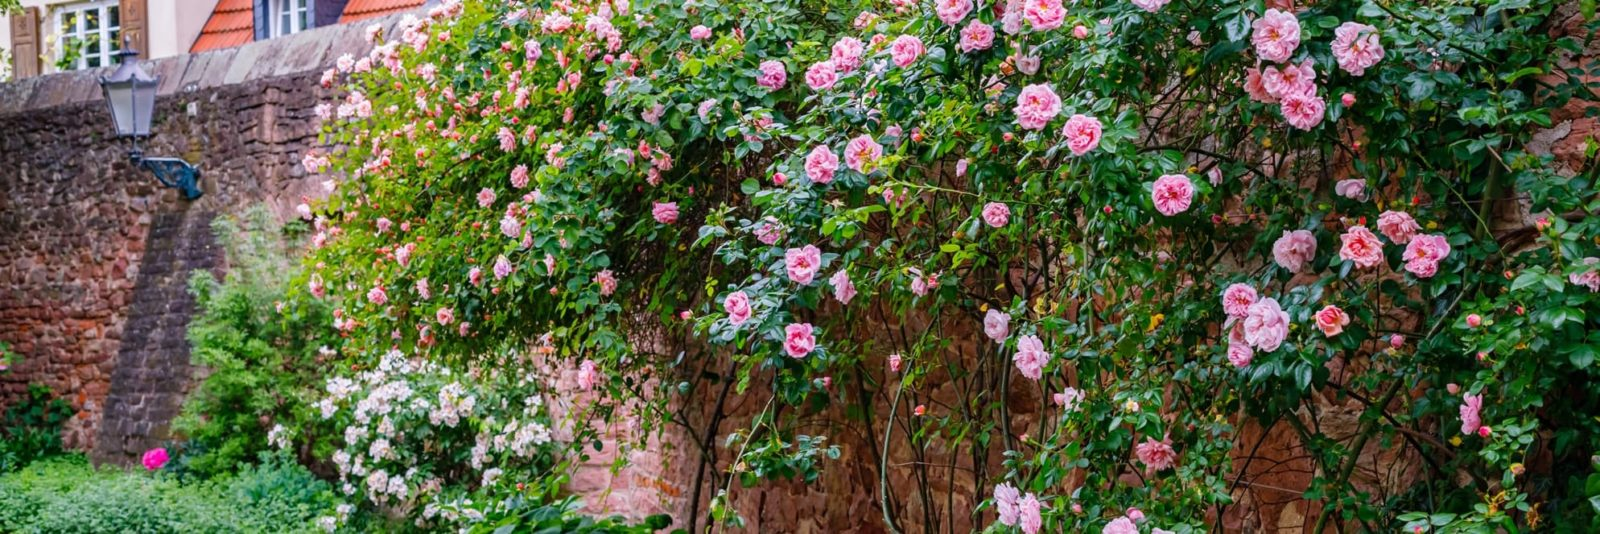 a garden wall covered in beautiful climbing roses